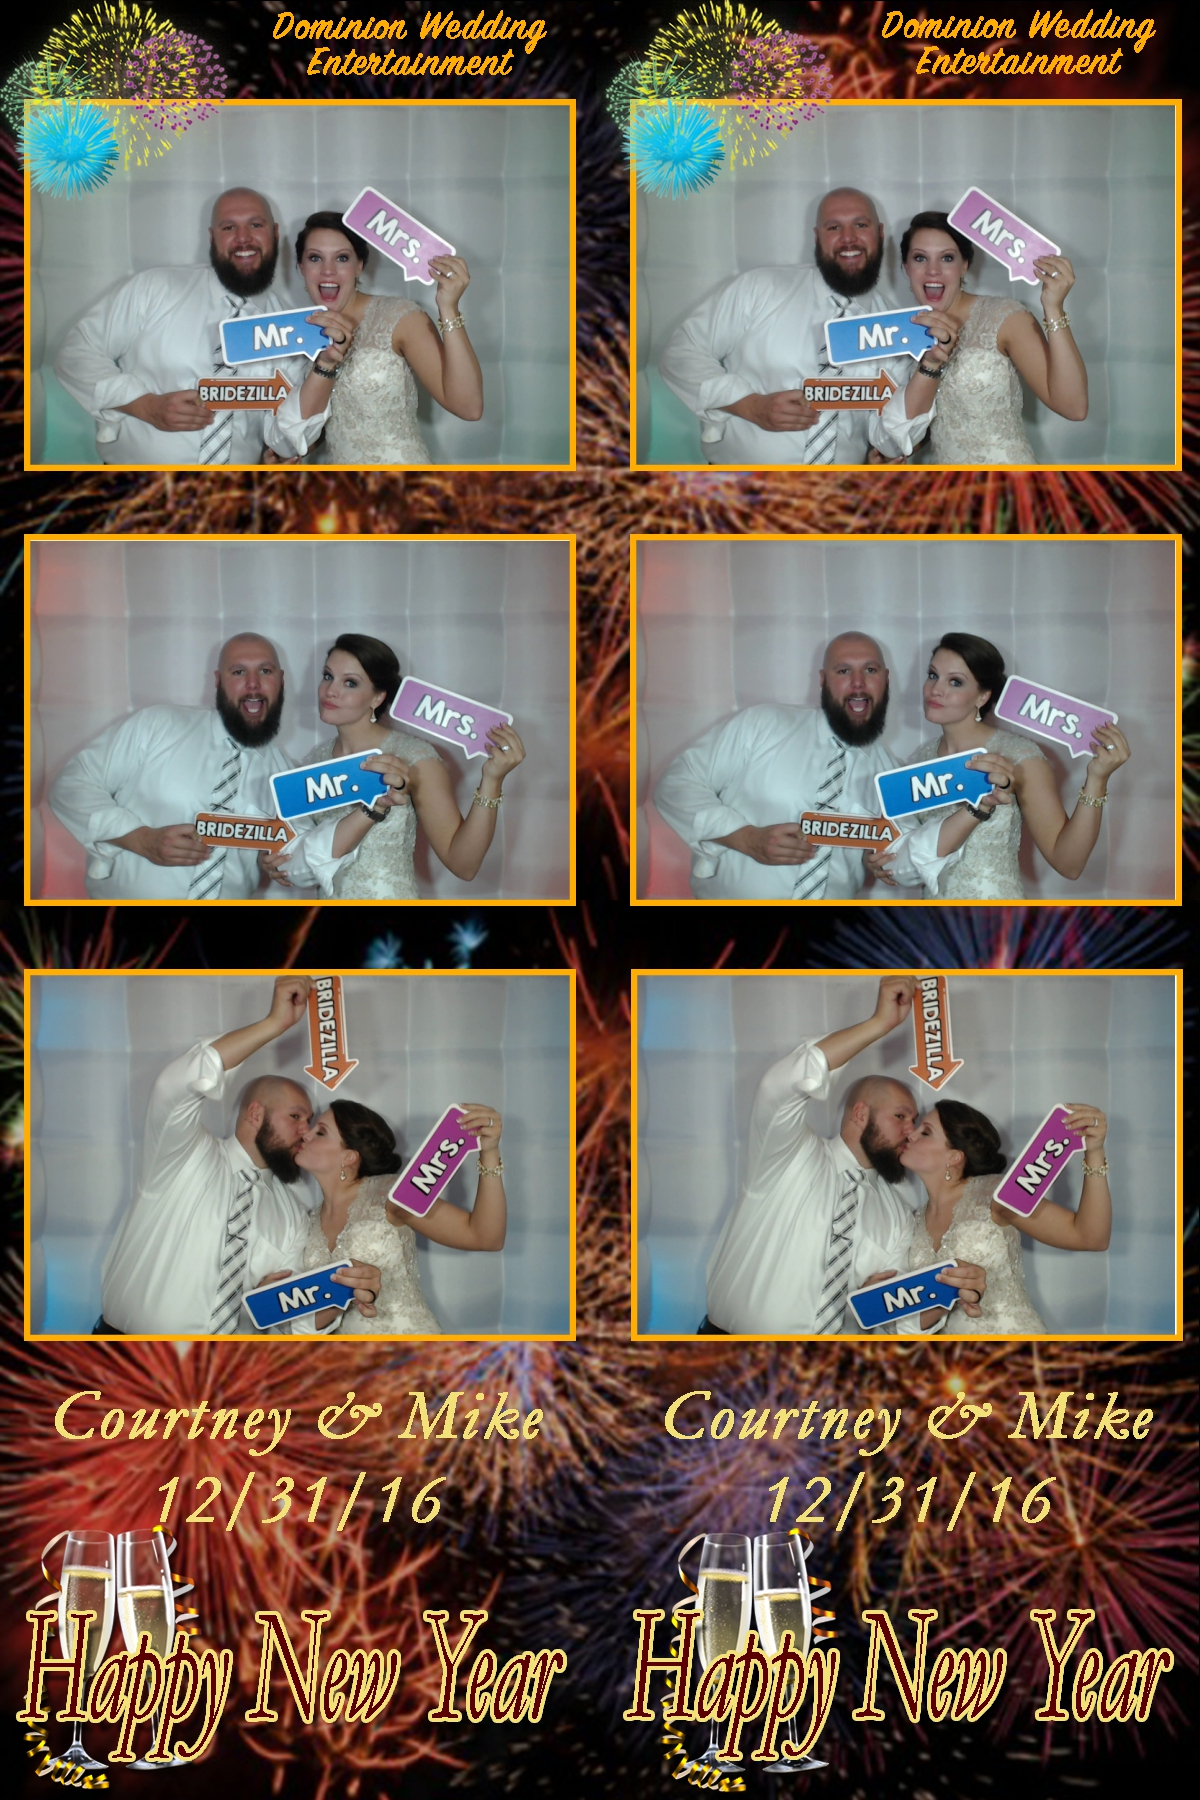 Courtney and Mike's glorious New Year's Eve wedding captured in the photo booth